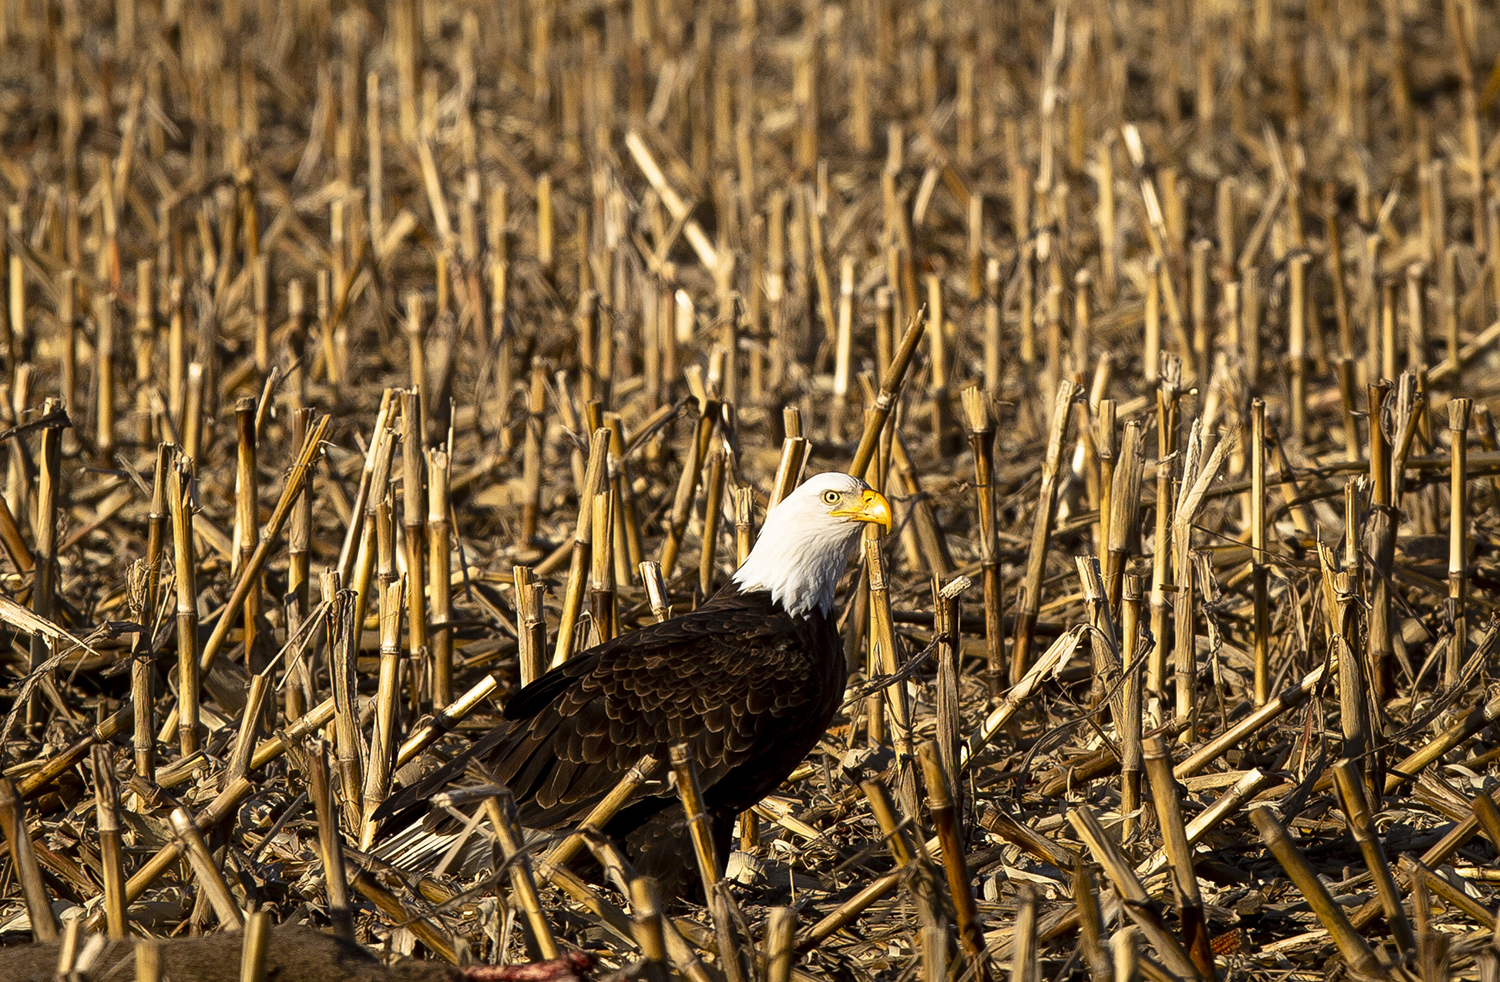 A bald eagle sits in a cornfield along Bradforton Road where it has been feeding on a deer carcass Wednesday, Jan. 9, 2019 in Springfield, Ill. Residents say the bird has been seen in the area for several days. [Rich Saal/The State Journal-Register]